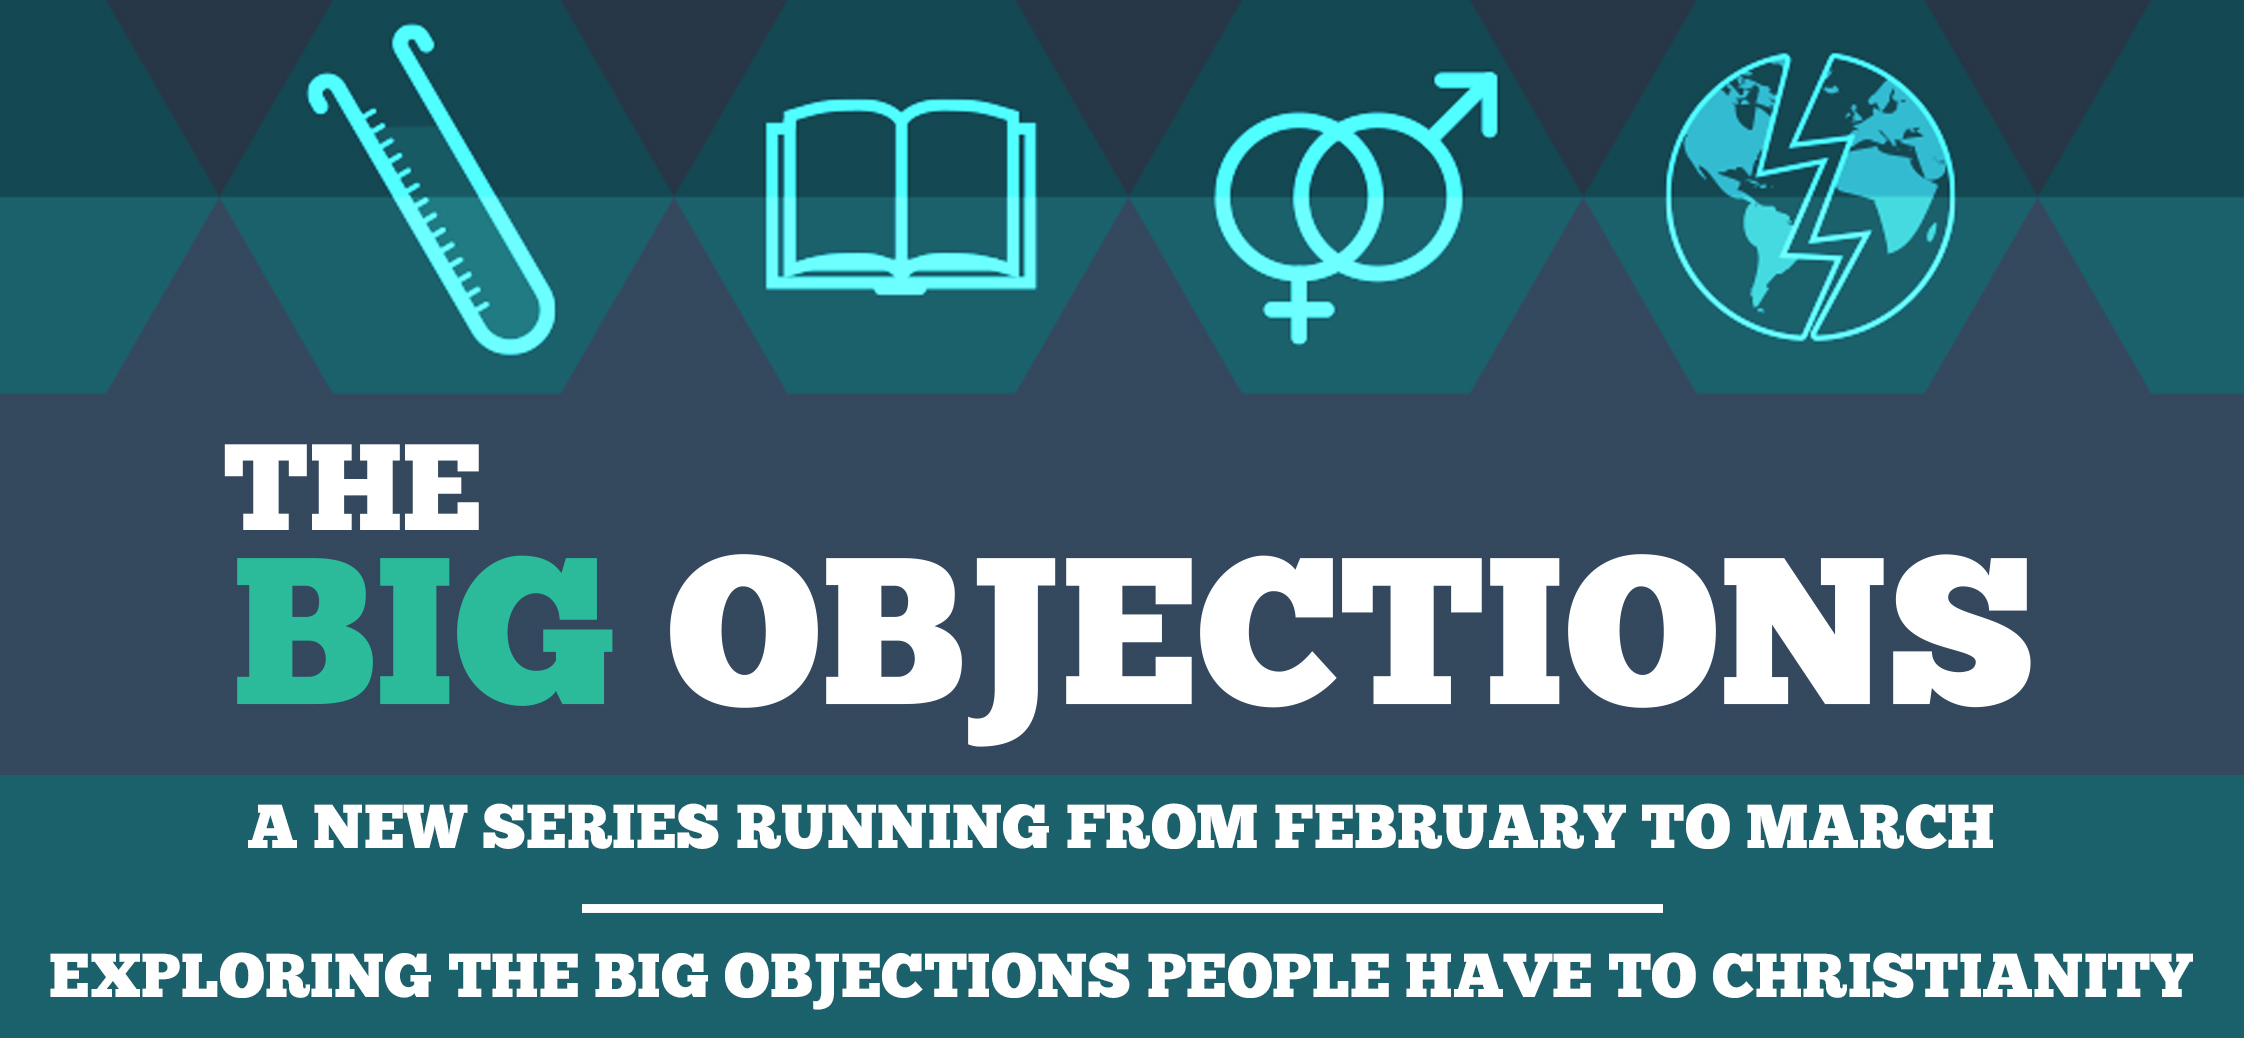 The Big Objections - A series of Apologetics